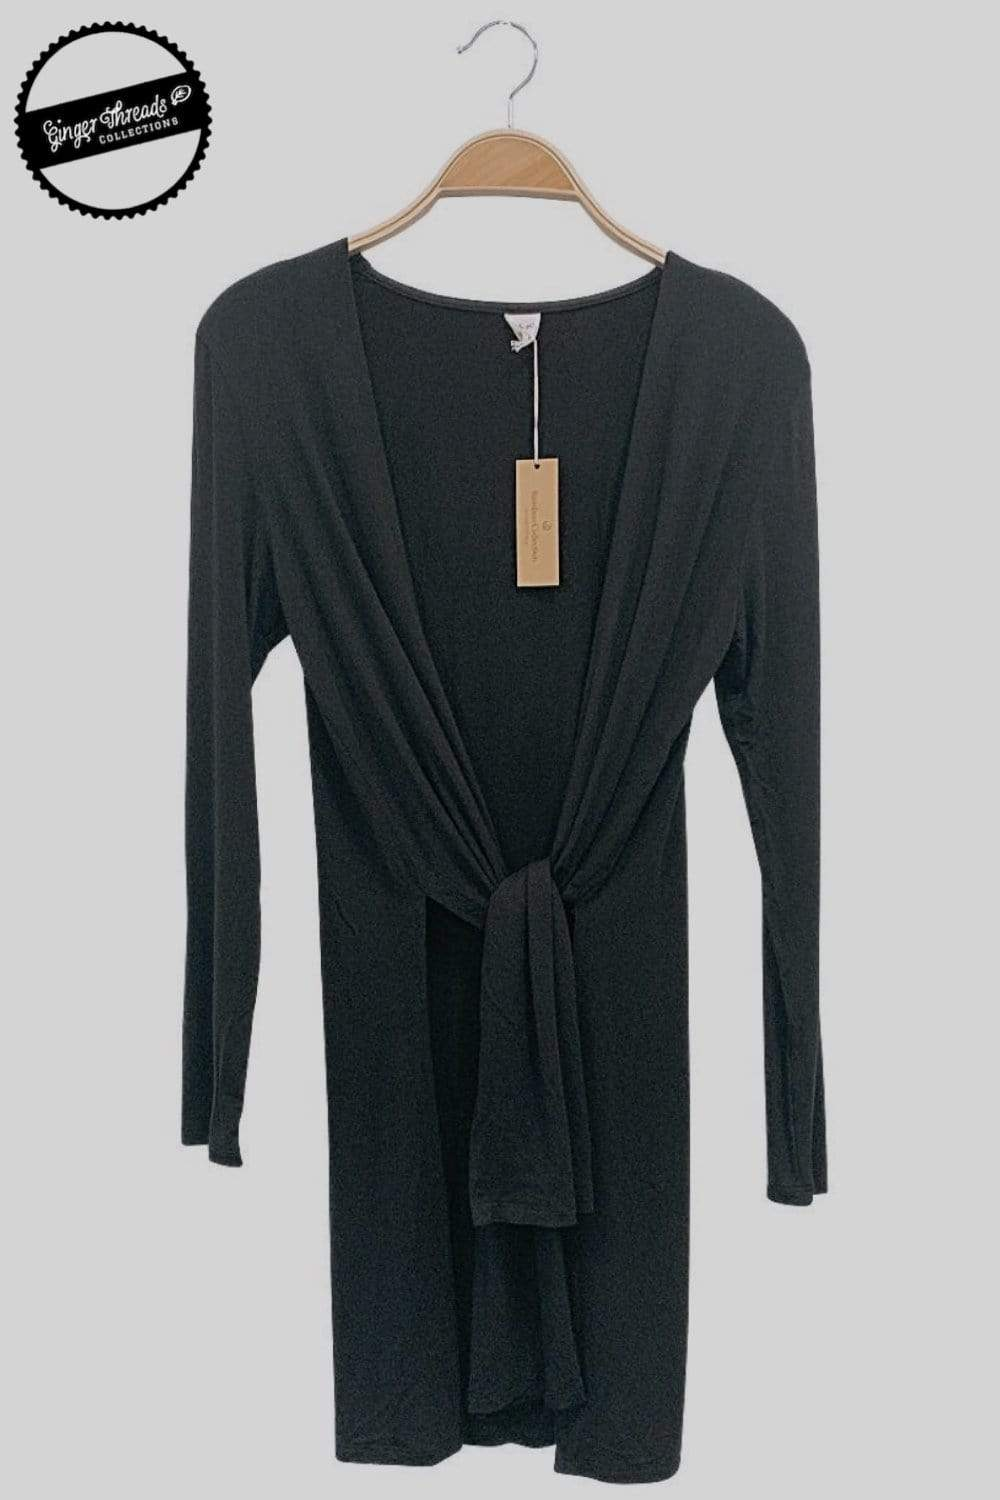 Ginger Threads Collections Black Bamboo Long Sleeve Cardigan